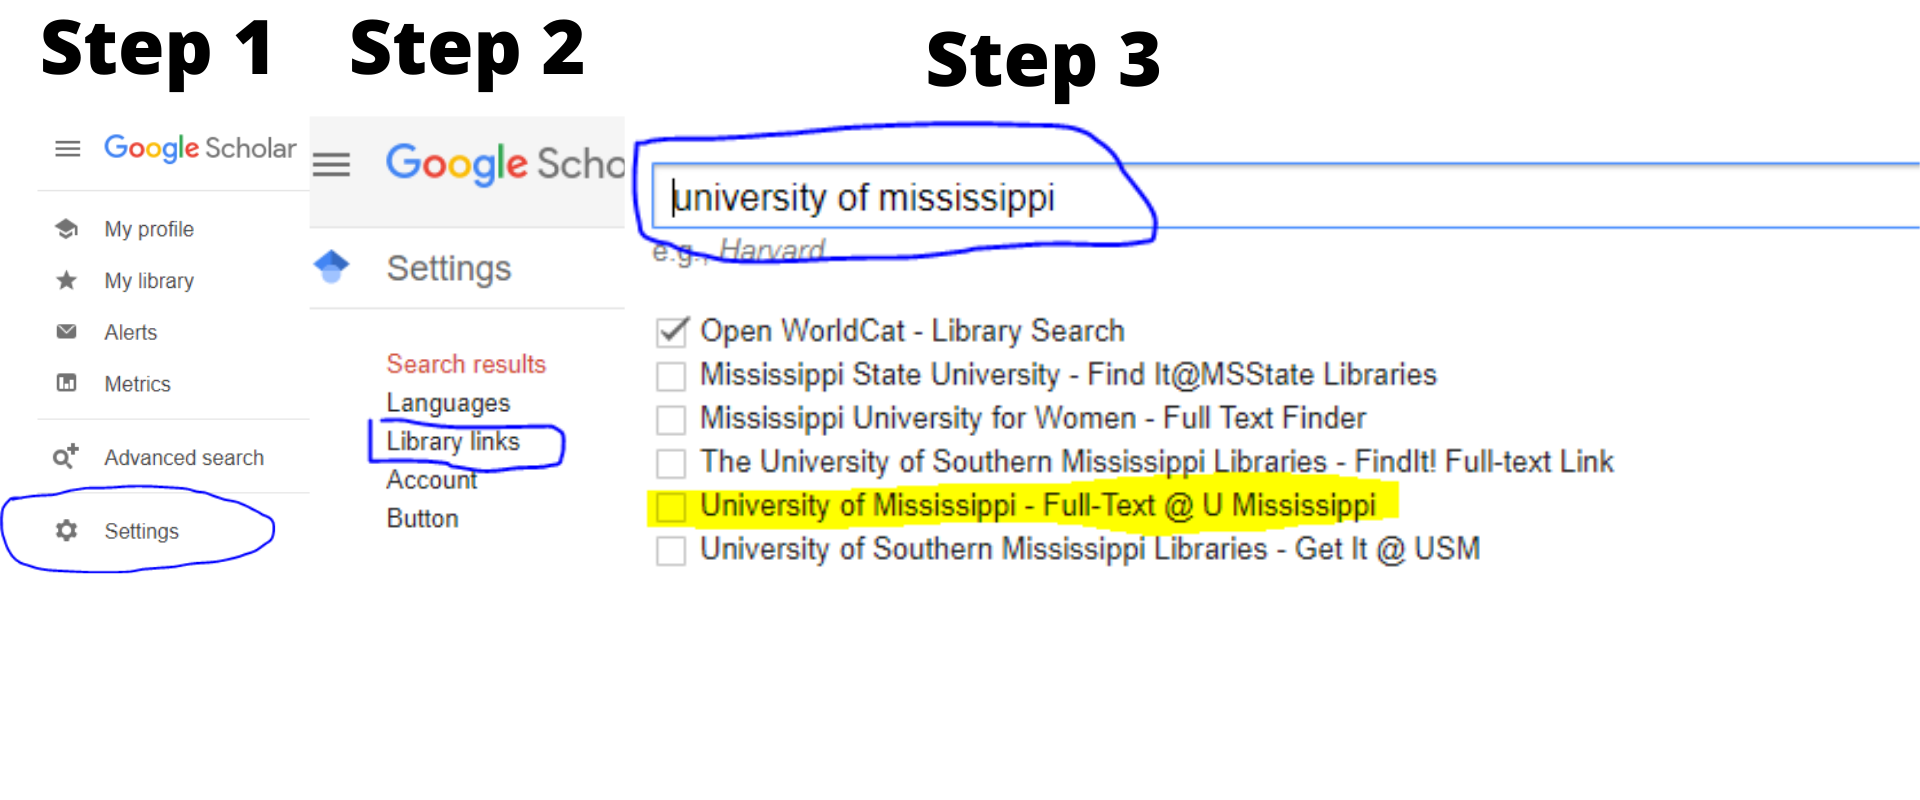 3 Steps to sync Google Scholar with UM library holdings. 1) Go to scholar.google.com and select the menu in upper left hand corner; 2) From menu select Library Links; 3) Search University of Missisippi and select appropriate checkbox after searching